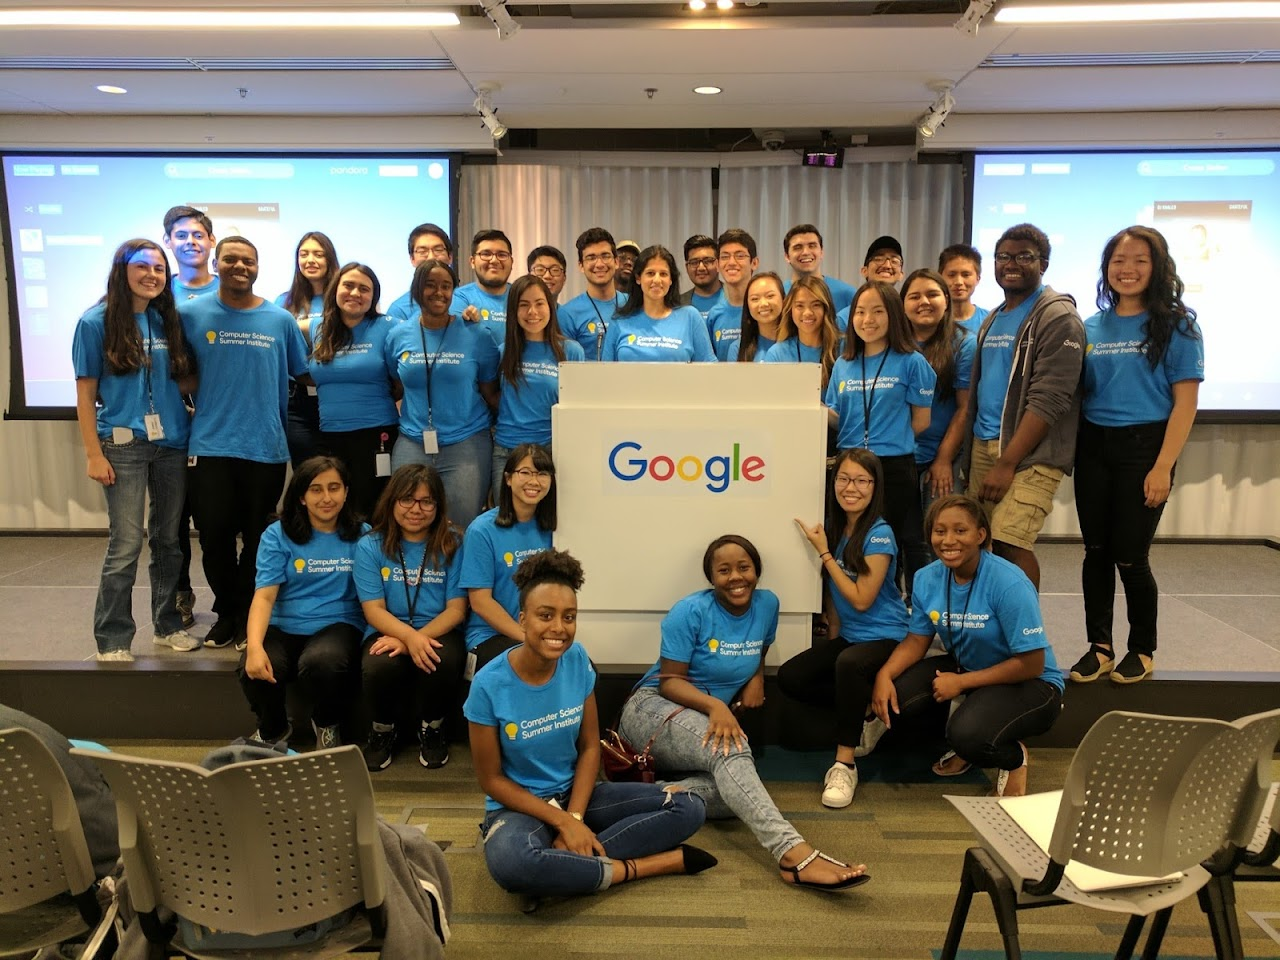 Computer Science Summer Institute (CSSI) – Build your future with Google